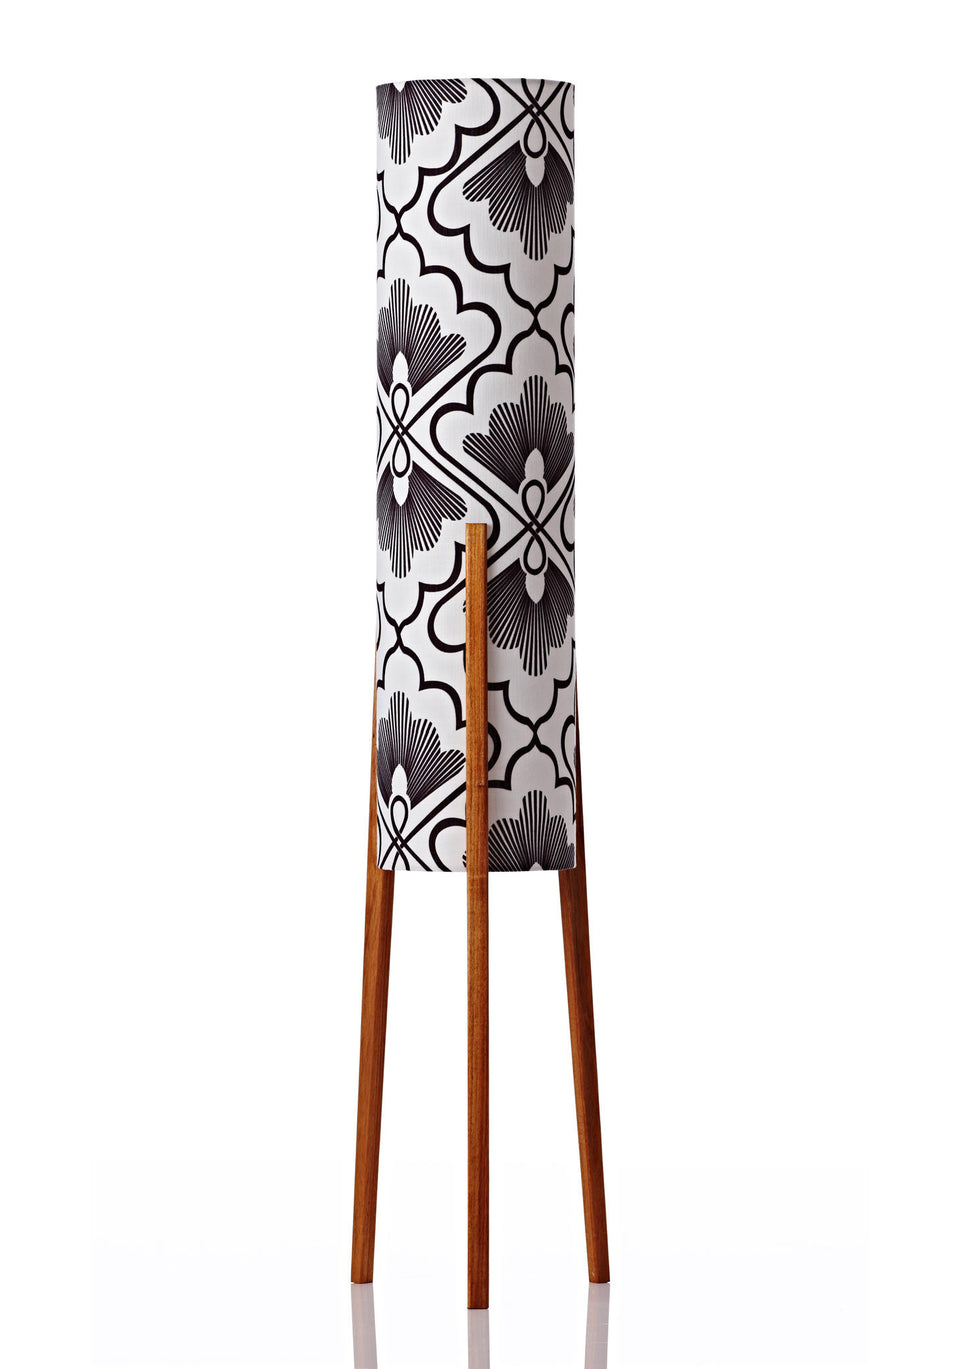 Rocket Floor Lamp • Medium - Fan Coal